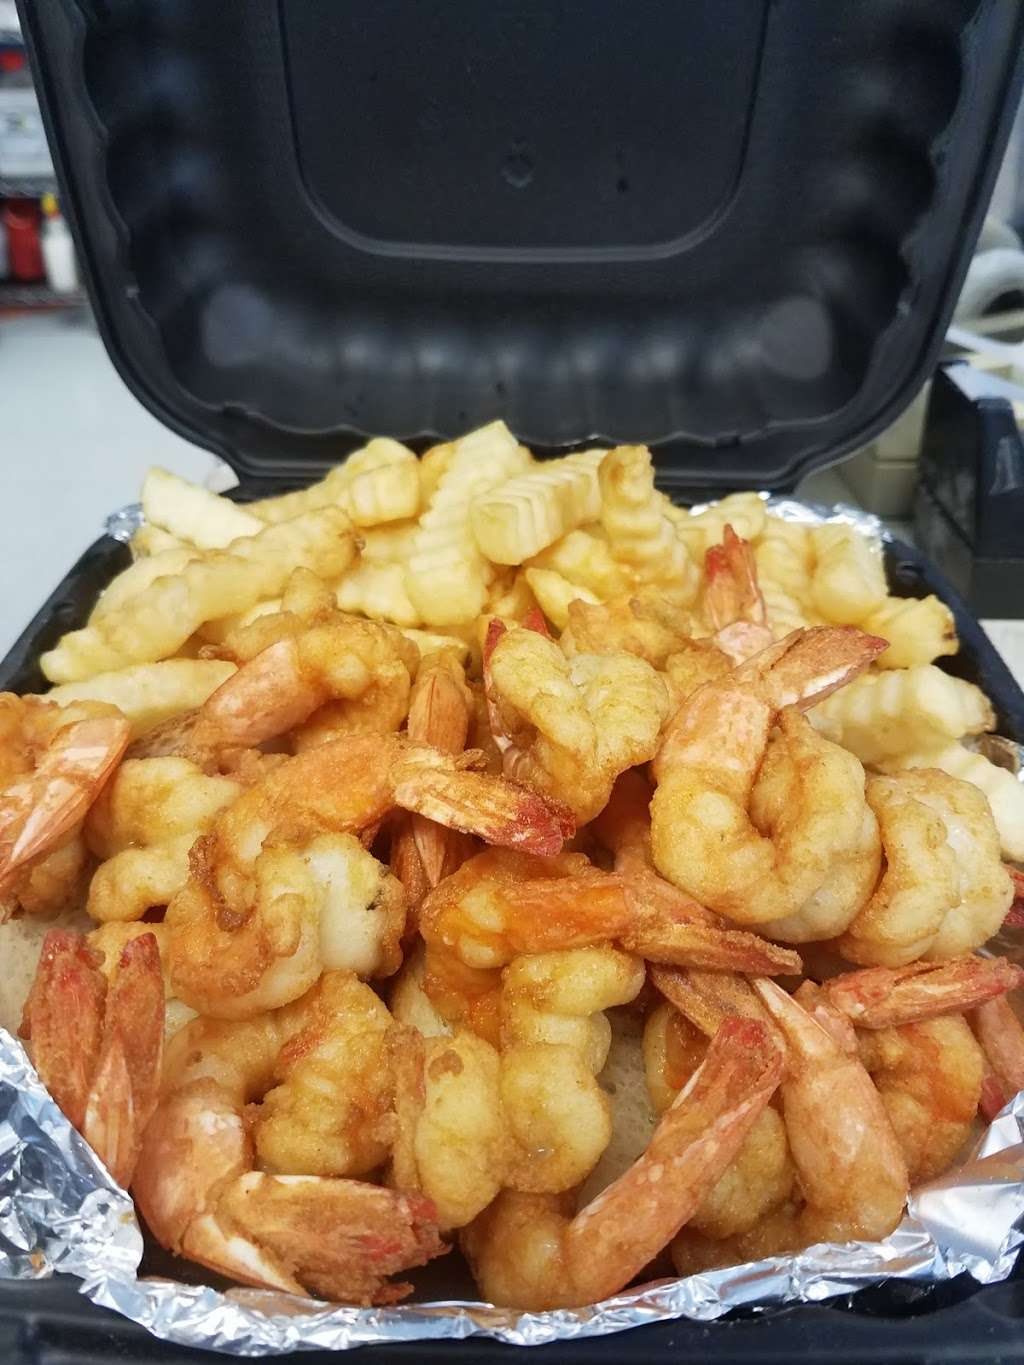 Five Star Seafood carry out - restaurant    Photo 4 of 5   Address: 5408 Southern Maryland Blvd #12, Lothian, MD 20711, USA   Phone: (240) 892-2215